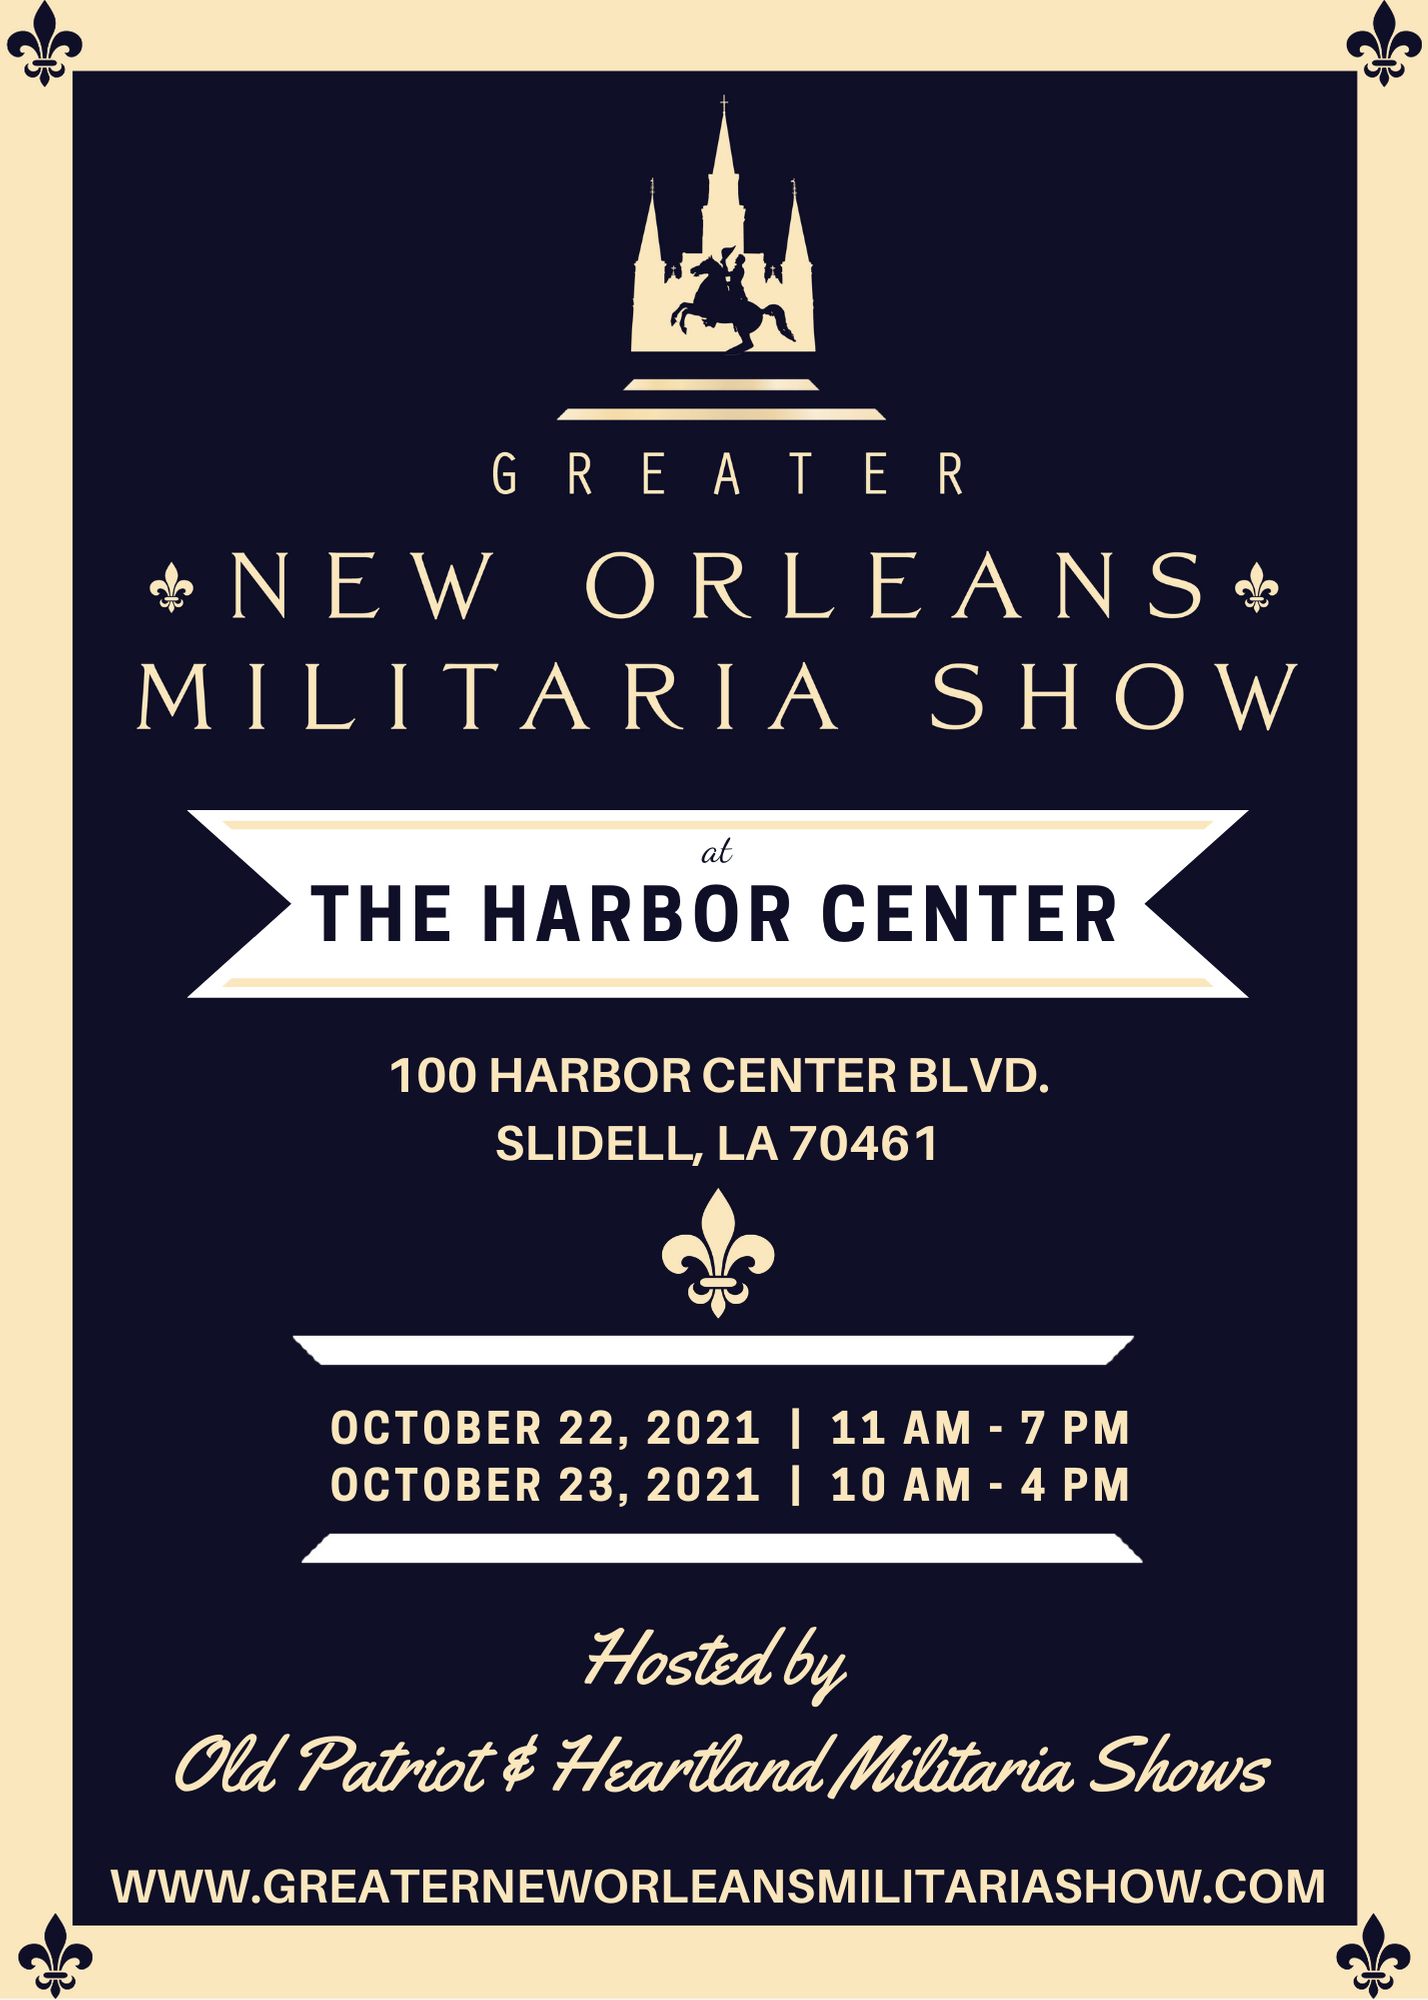 Greater New Orleans Militaria Show